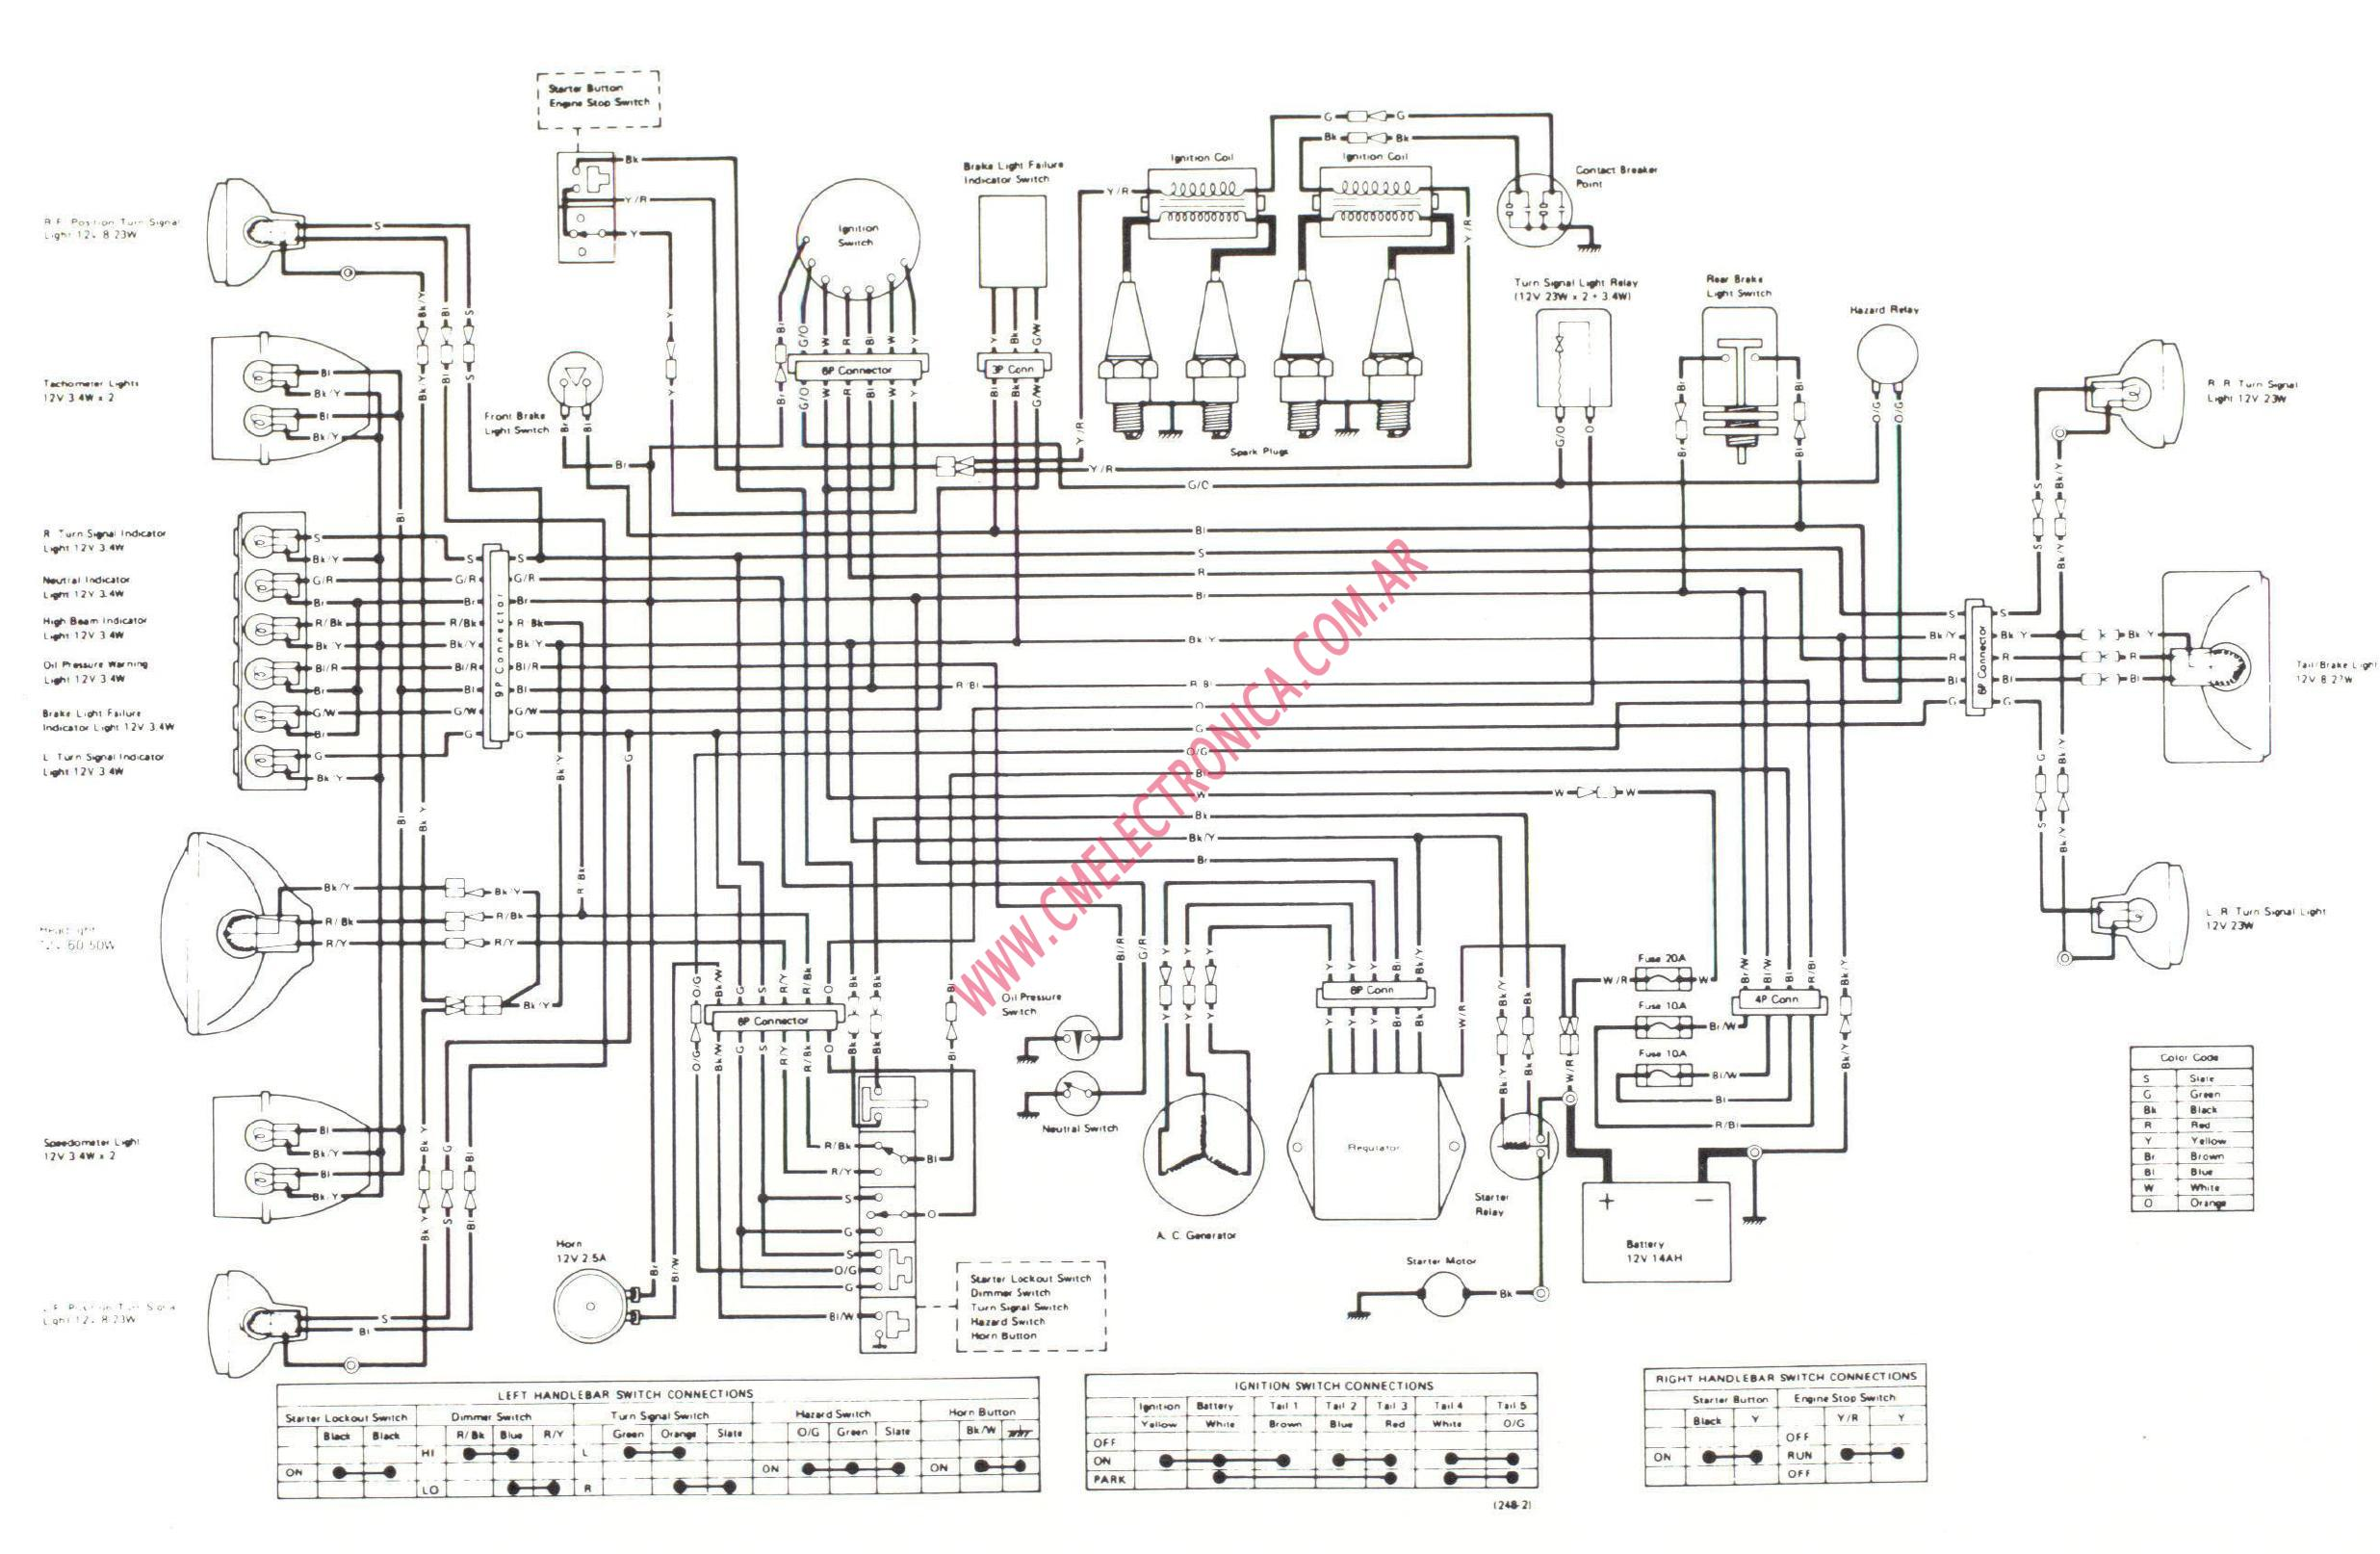 Ninja 250 Wiring Diagram 24 Images Kawasaki 250r Kz1000 1979 Police At